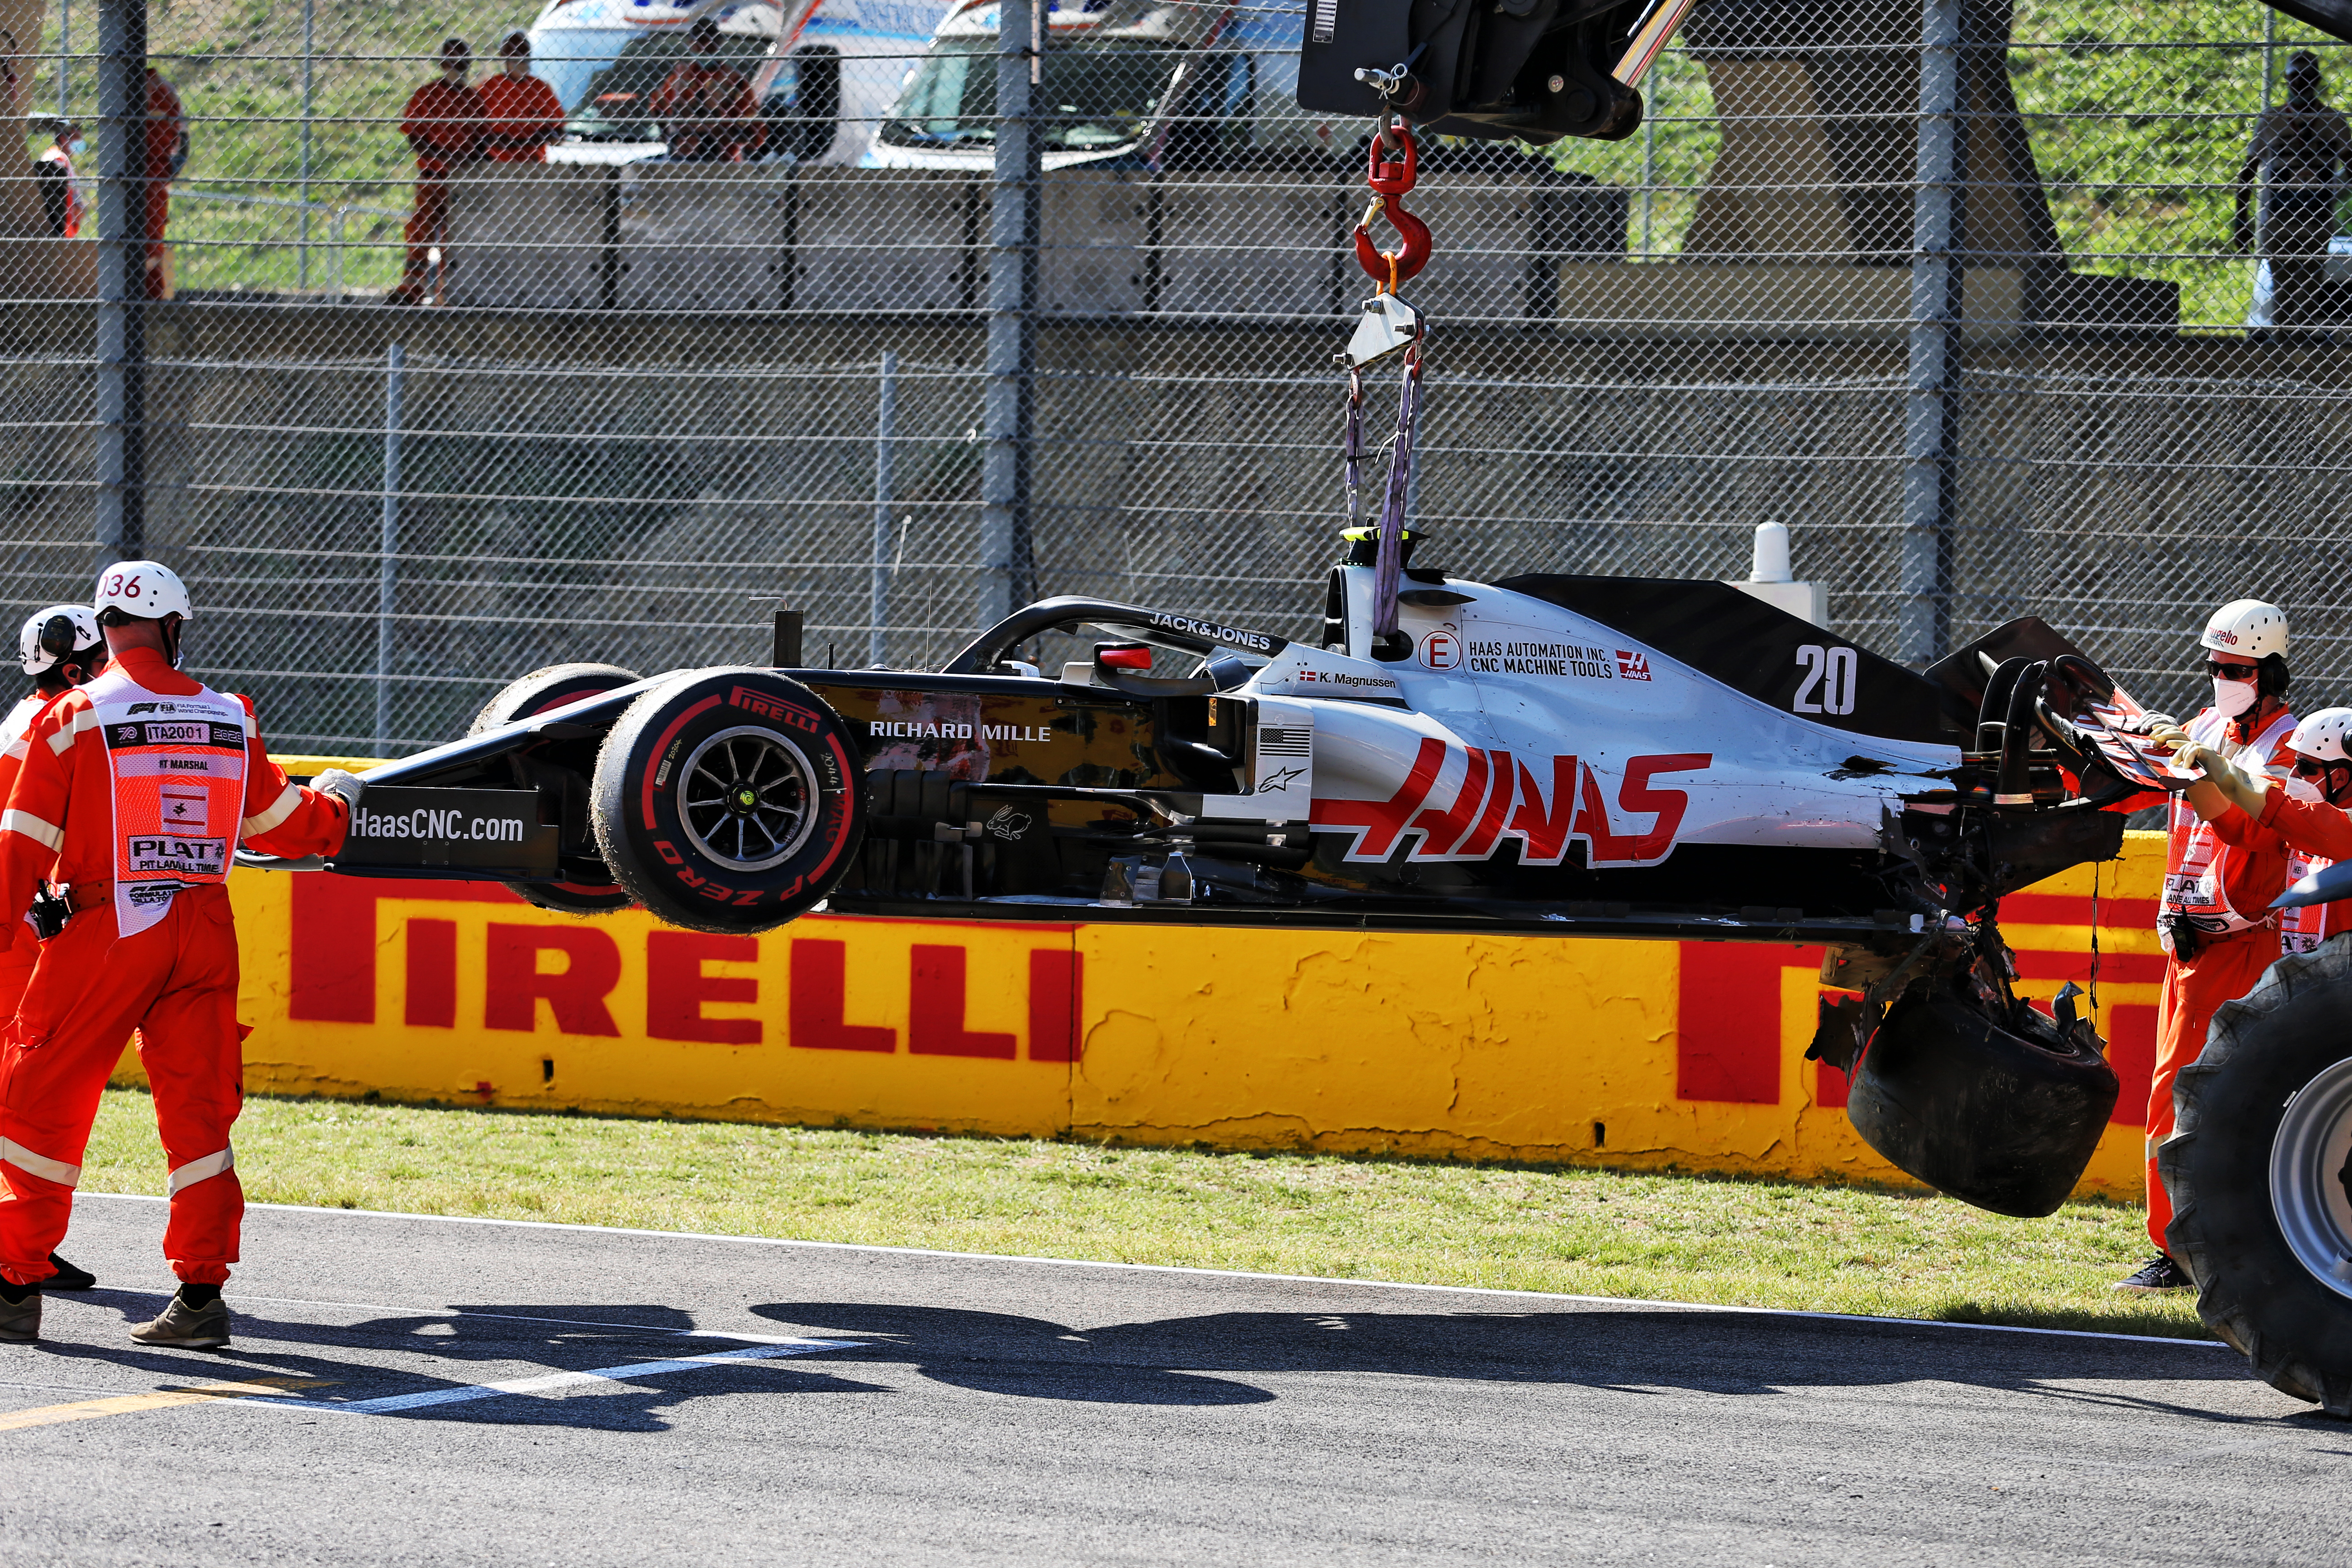 Magnussen Kvyat Accused Of Rule Breach Over Restart Pile Up The Race